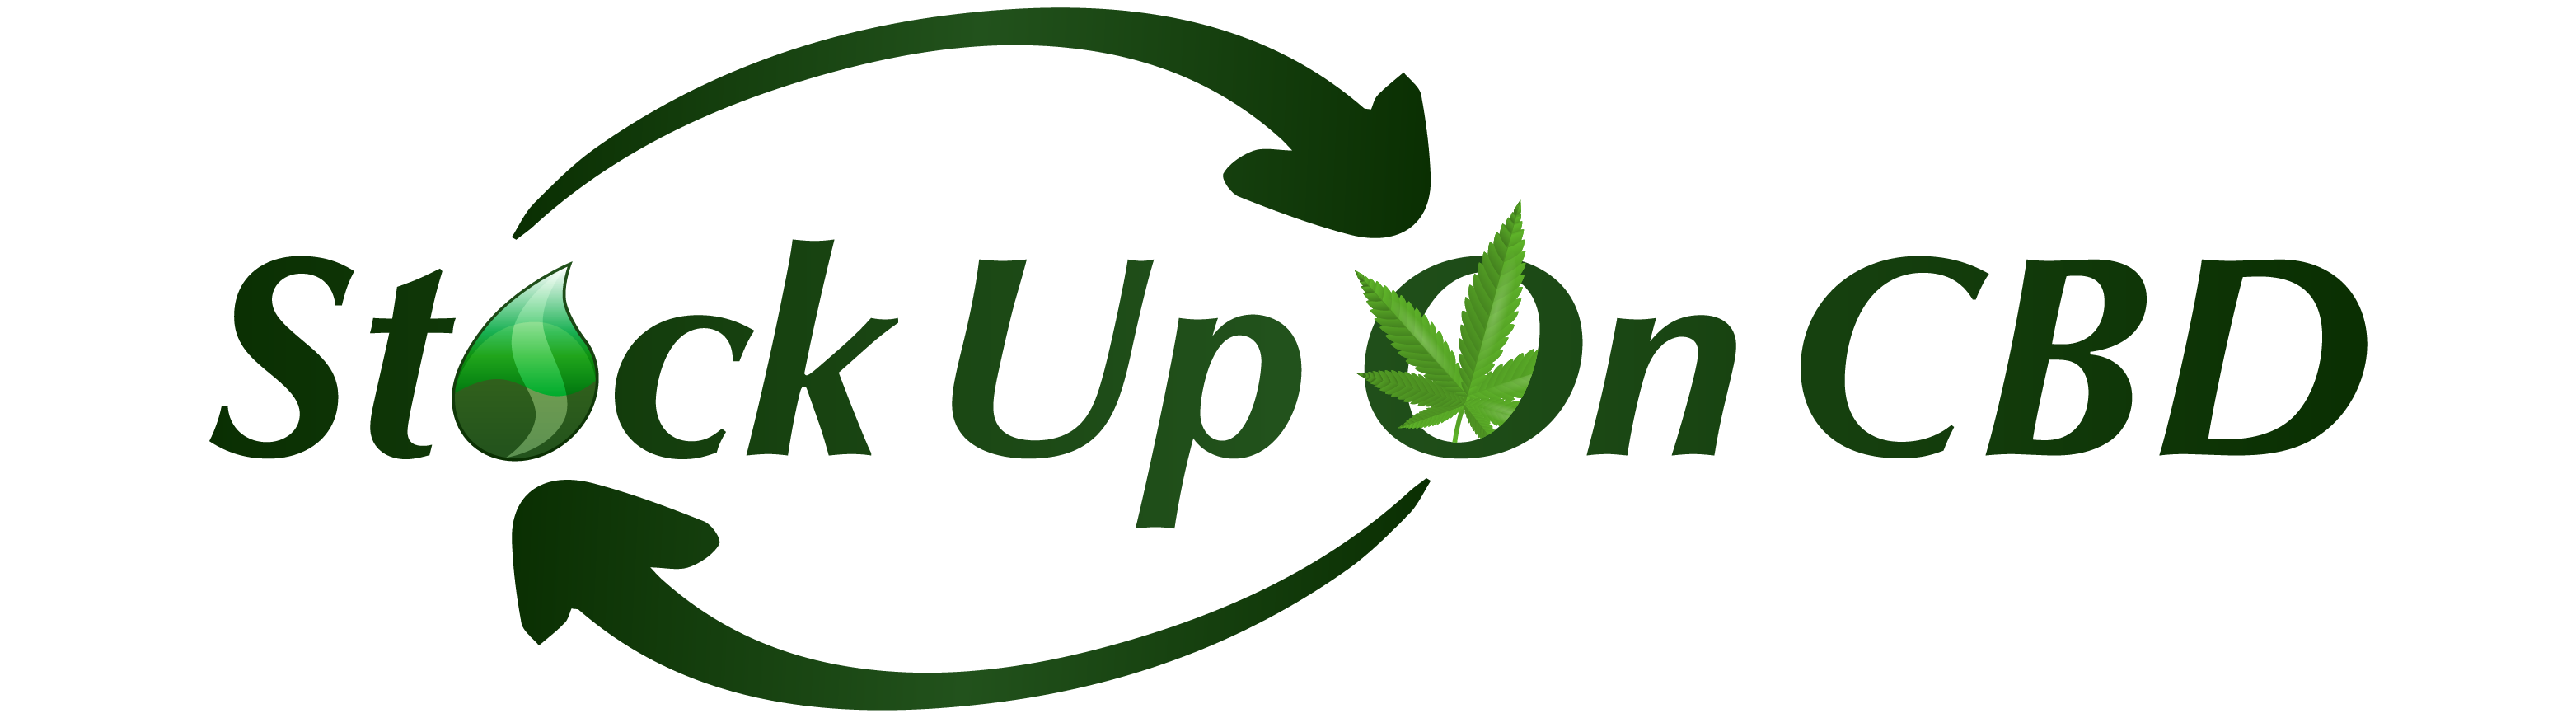 Stock Up On CBD is the World's first wholesale CBD marketplace where you can find the best CBD products across multiple categories from the leading Hemp and CBD brands.